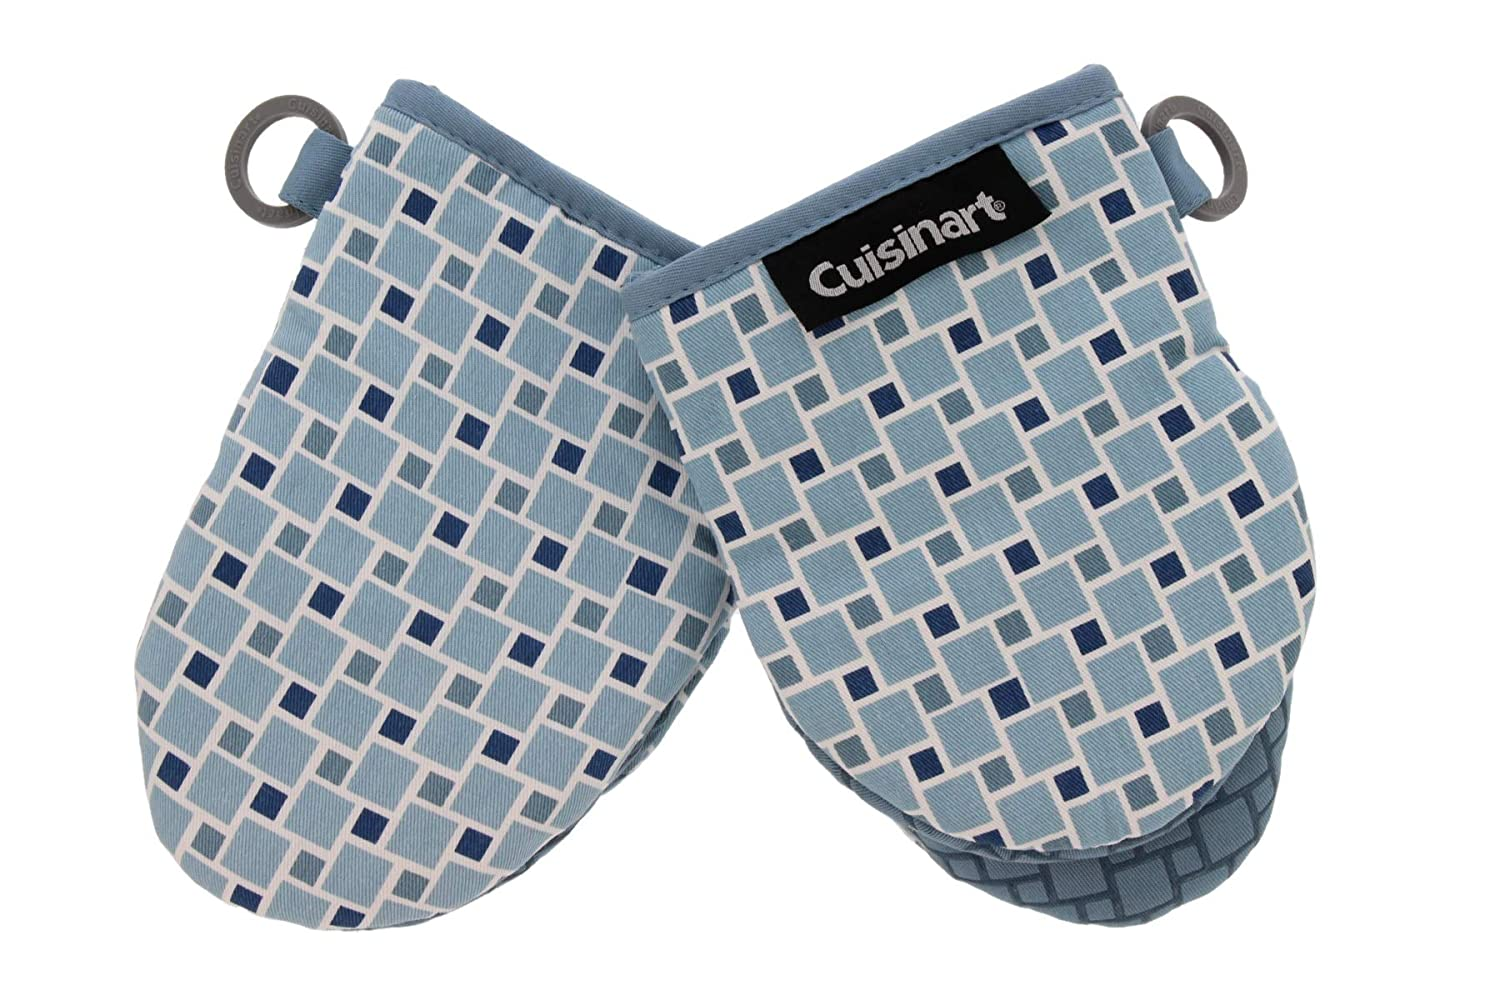 "Cuisinart Silicone Mini Oven Mitts, 2 Pack-Little Oven Gloves for Cooking-Heat Resistant, Non-Slip, Hanging Loop, 5.5"" x 7.5""-Ideal for Handling Hot Kitchen/Bakeware Items - Checkered Arona"